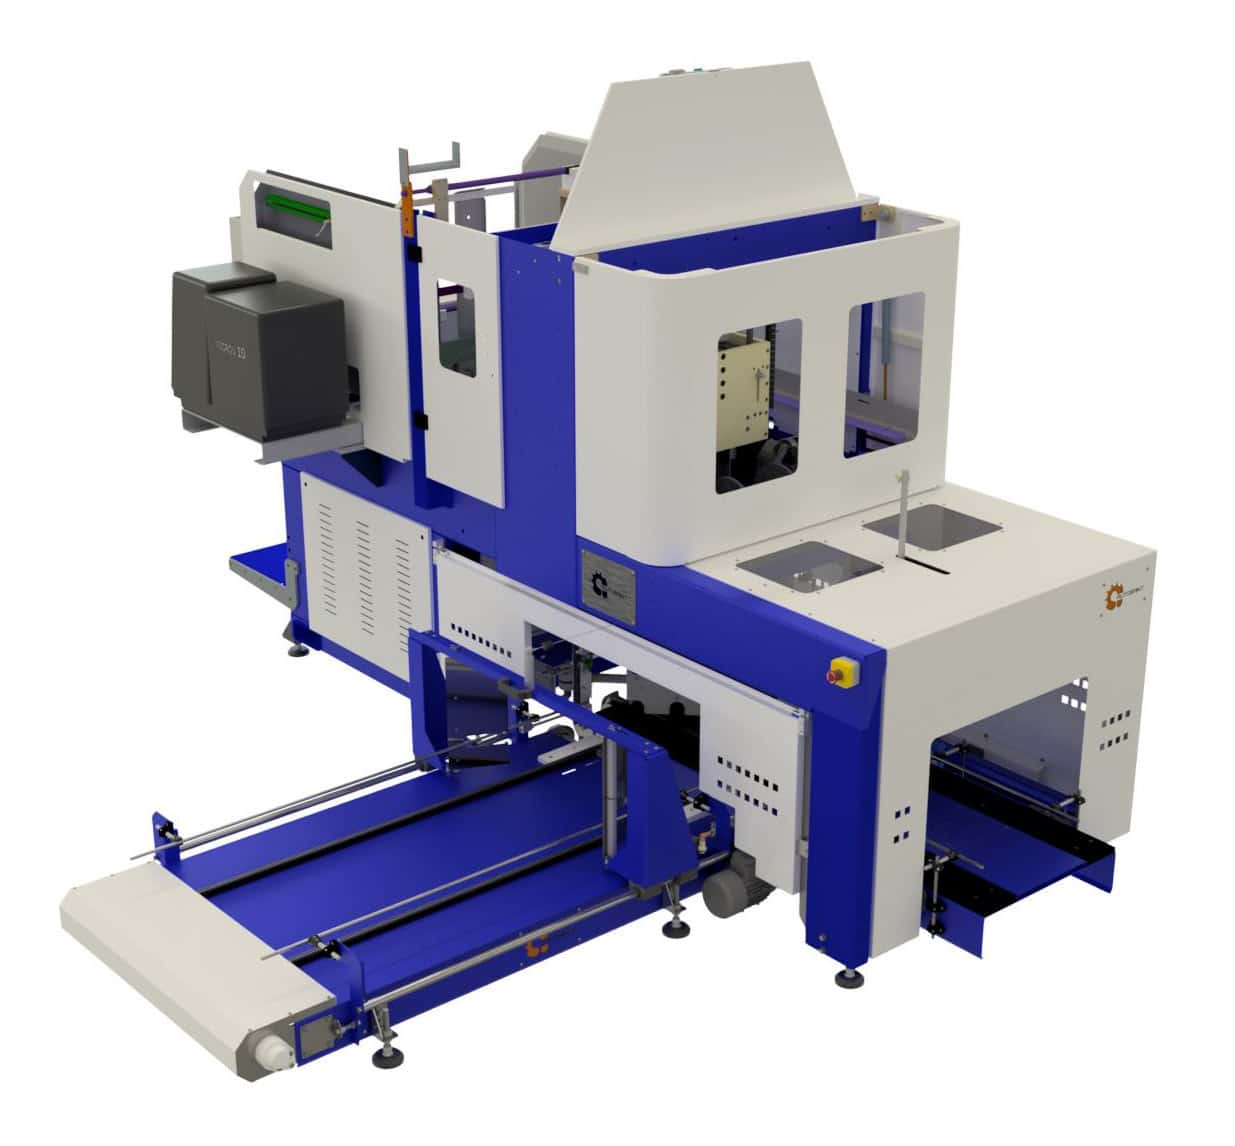 Automaint Solutions HSC Tray Inserter